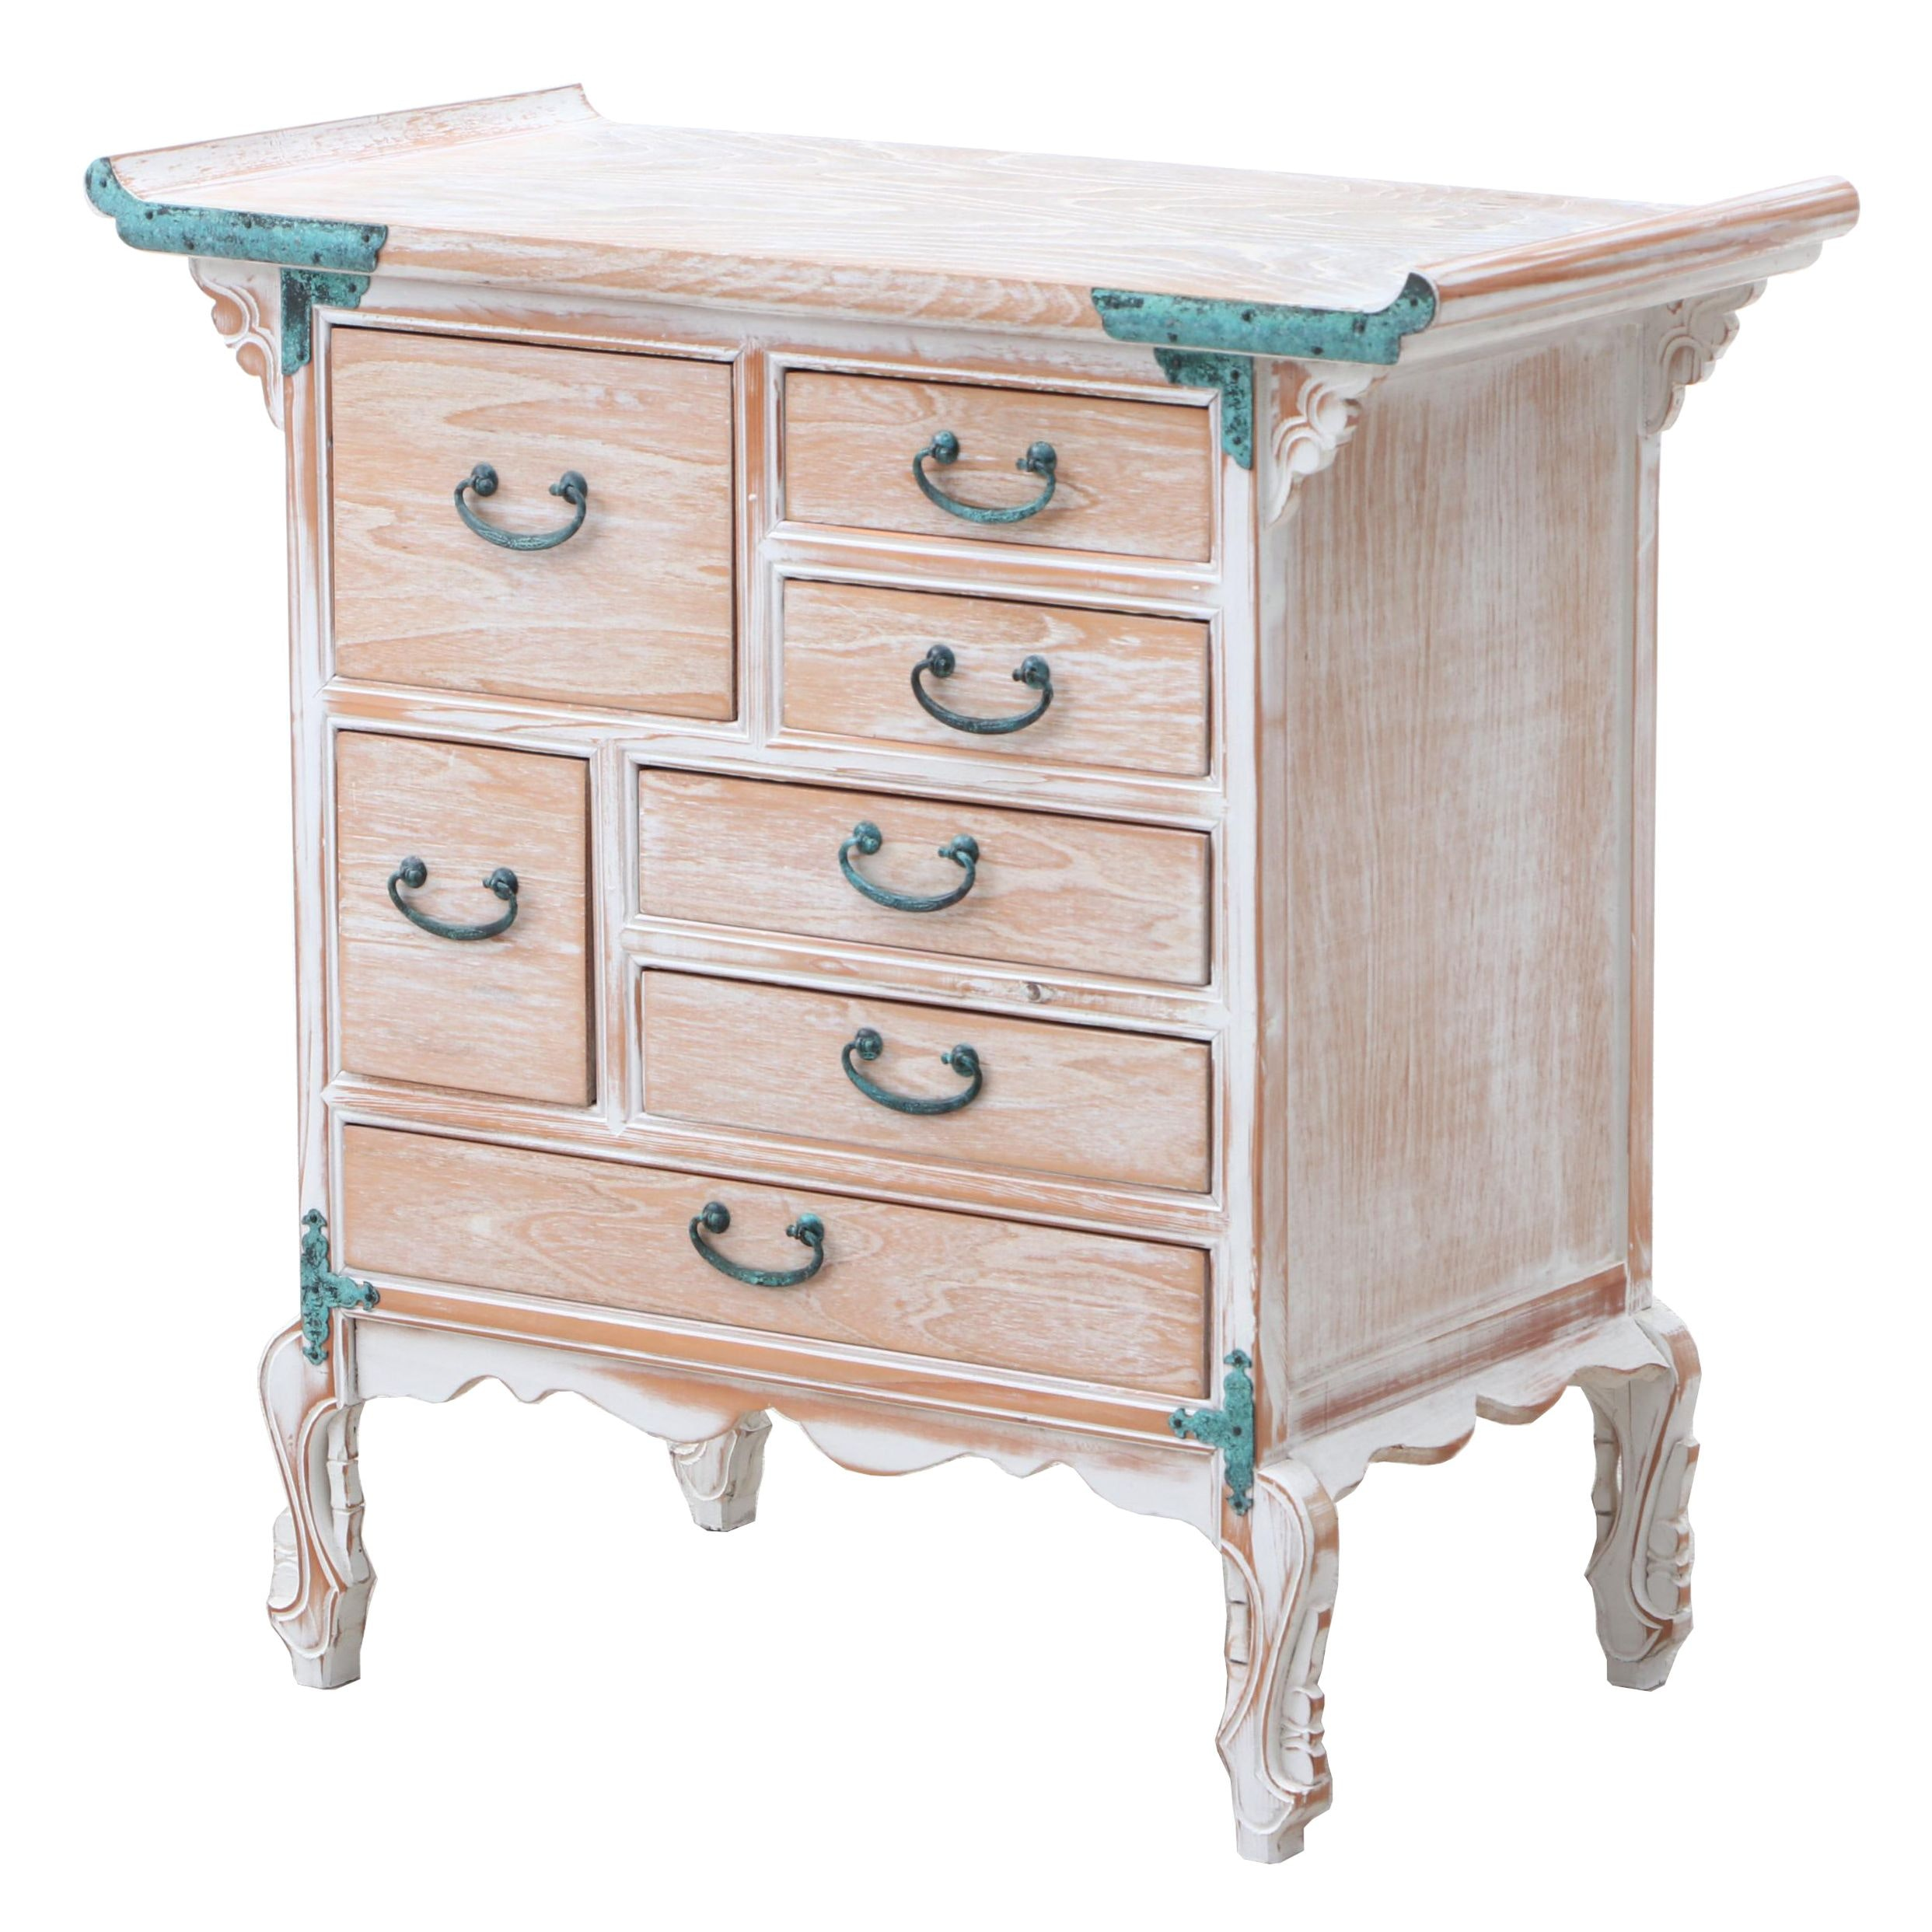 Chinese Inspired Chest of Drawers Accent Table